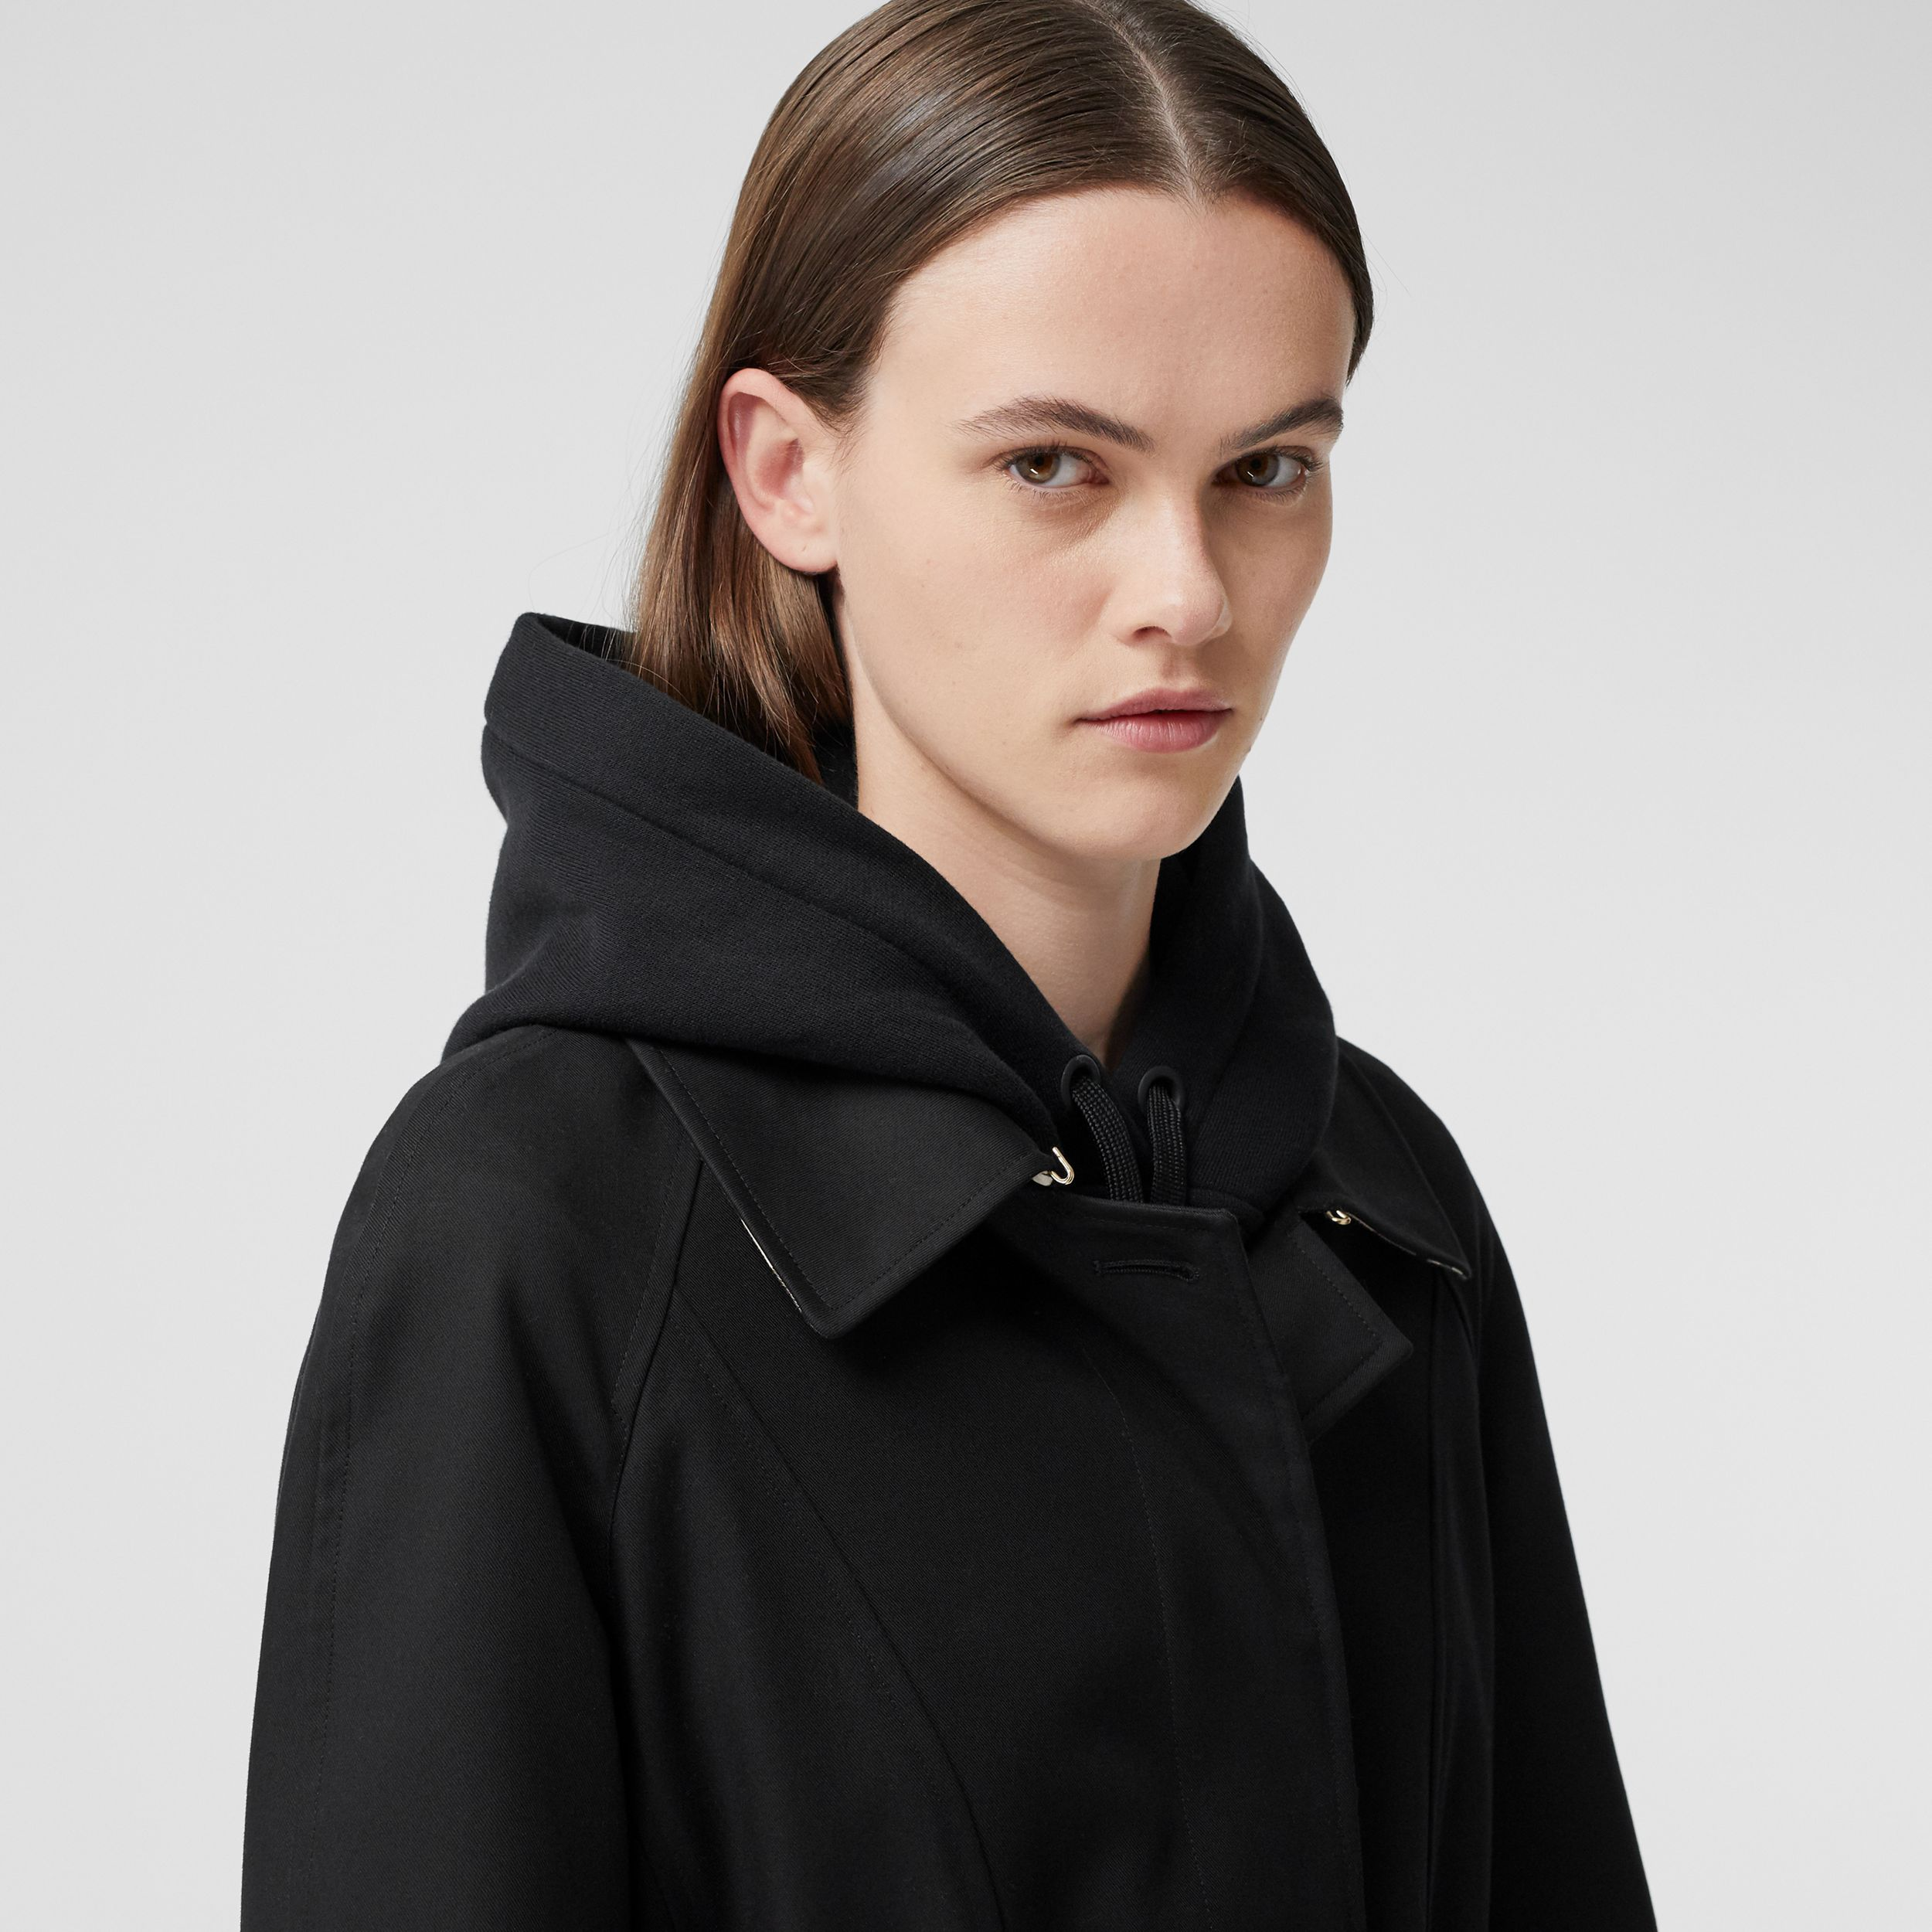 Cotton Gabardine Belted Swing Coat in Black - Women | Burberry United States - 2